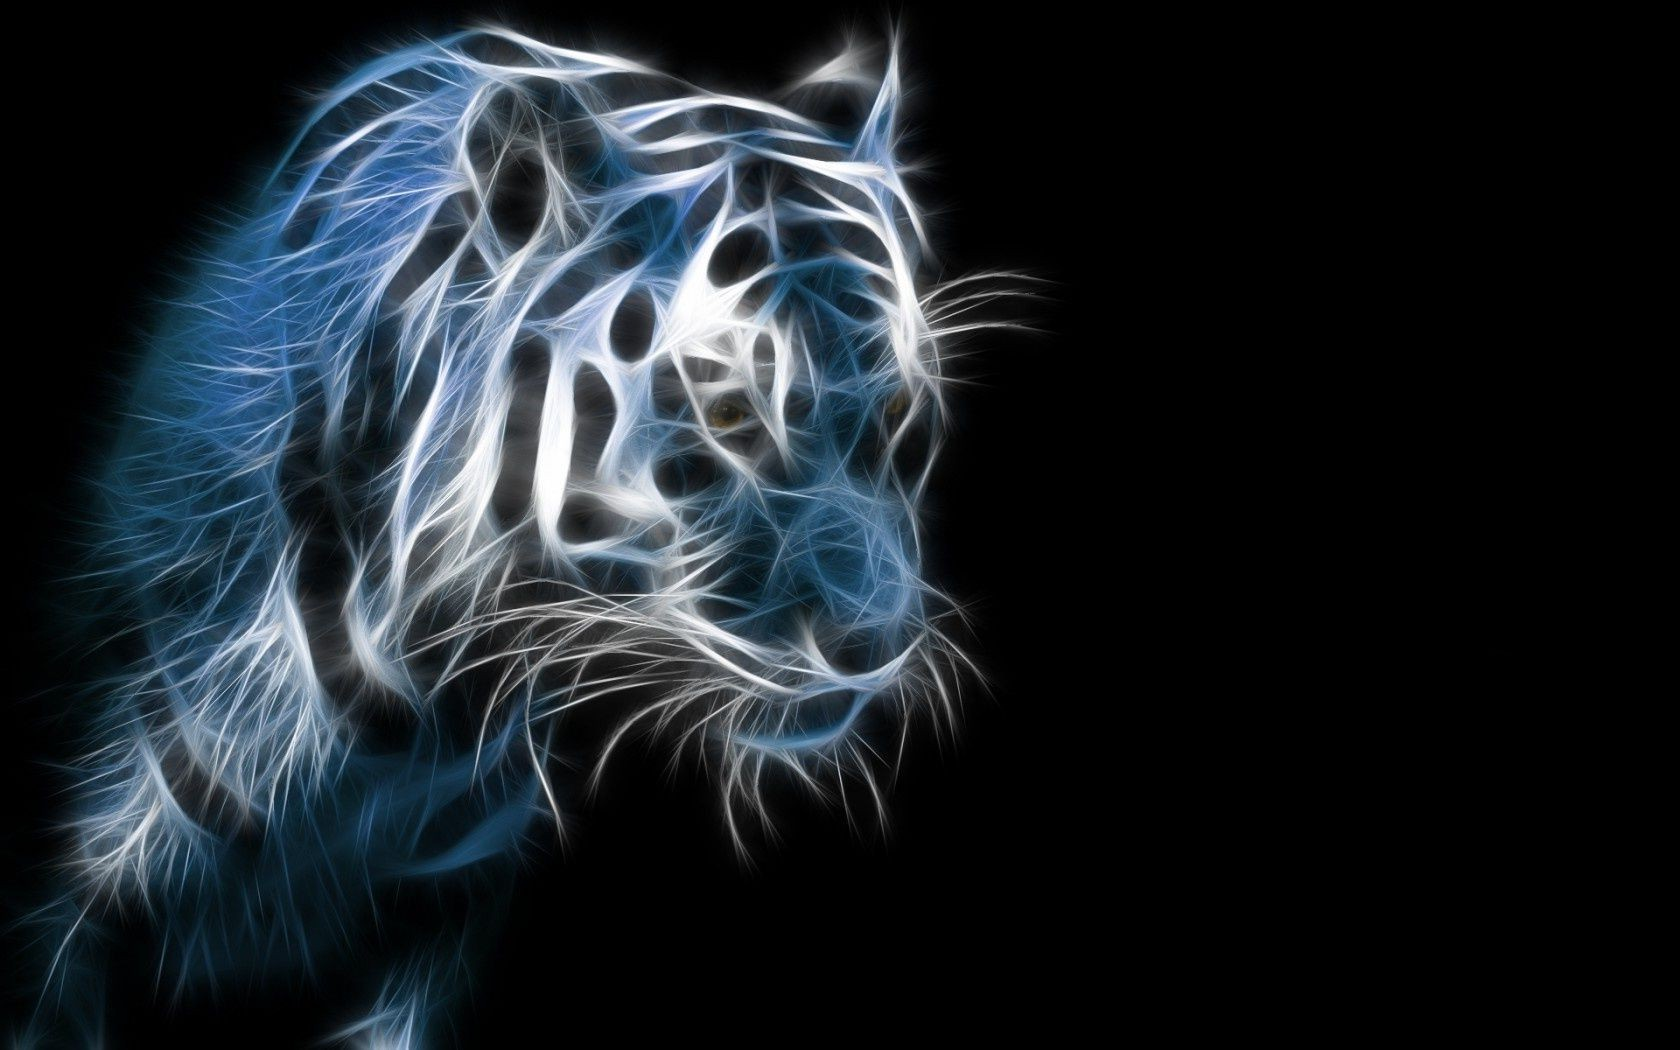 3d tiger dark black background. android wallpapers for free.